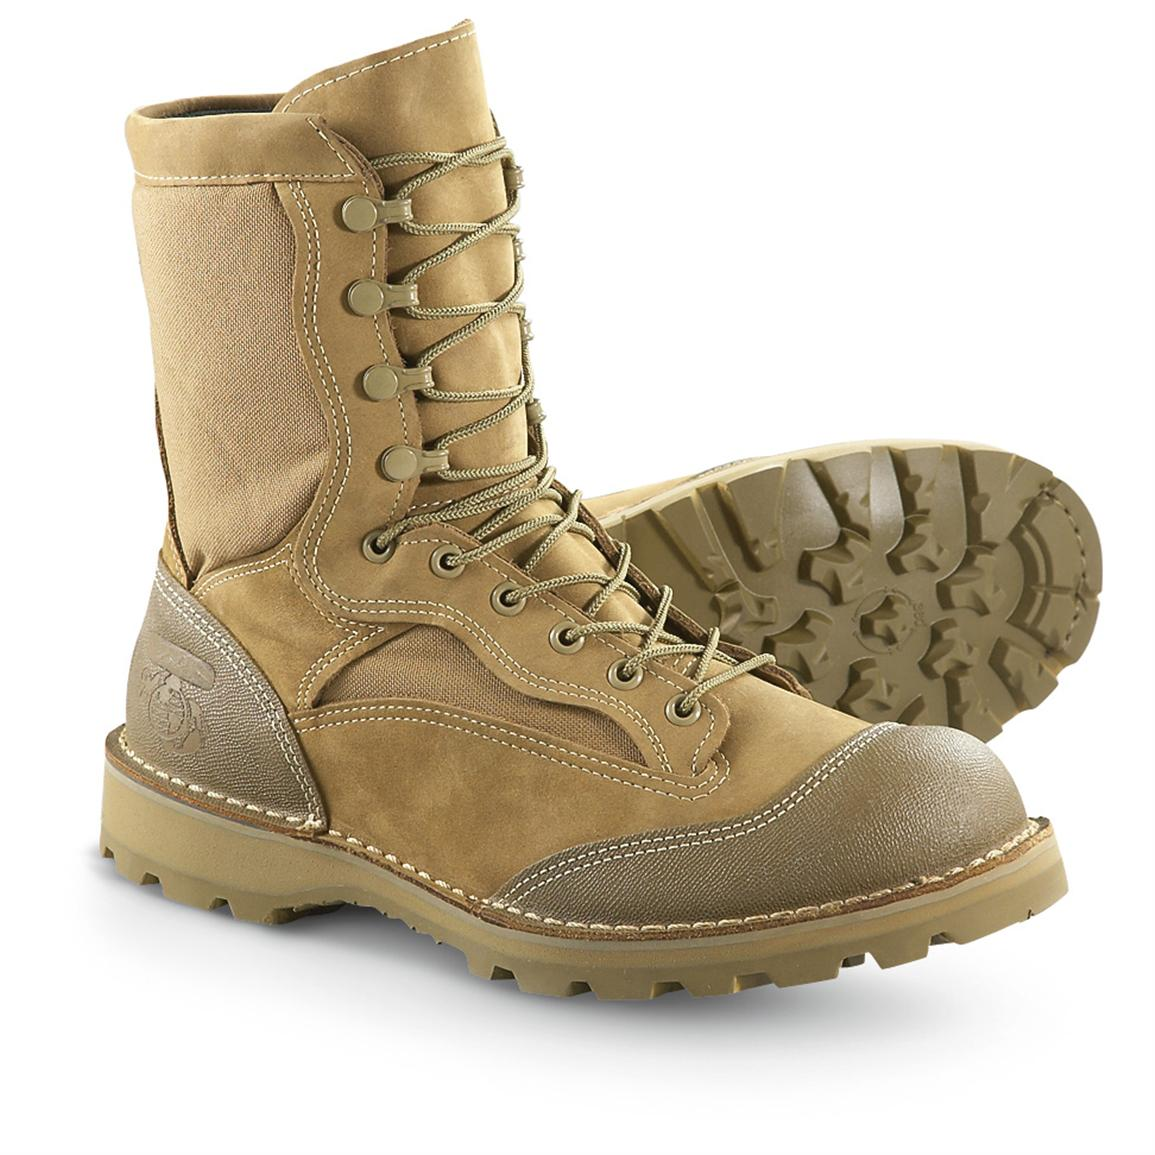 timeless design a7e7f f71bc USMC Boot Review: Bates Boots | Officer Candidates School Blog